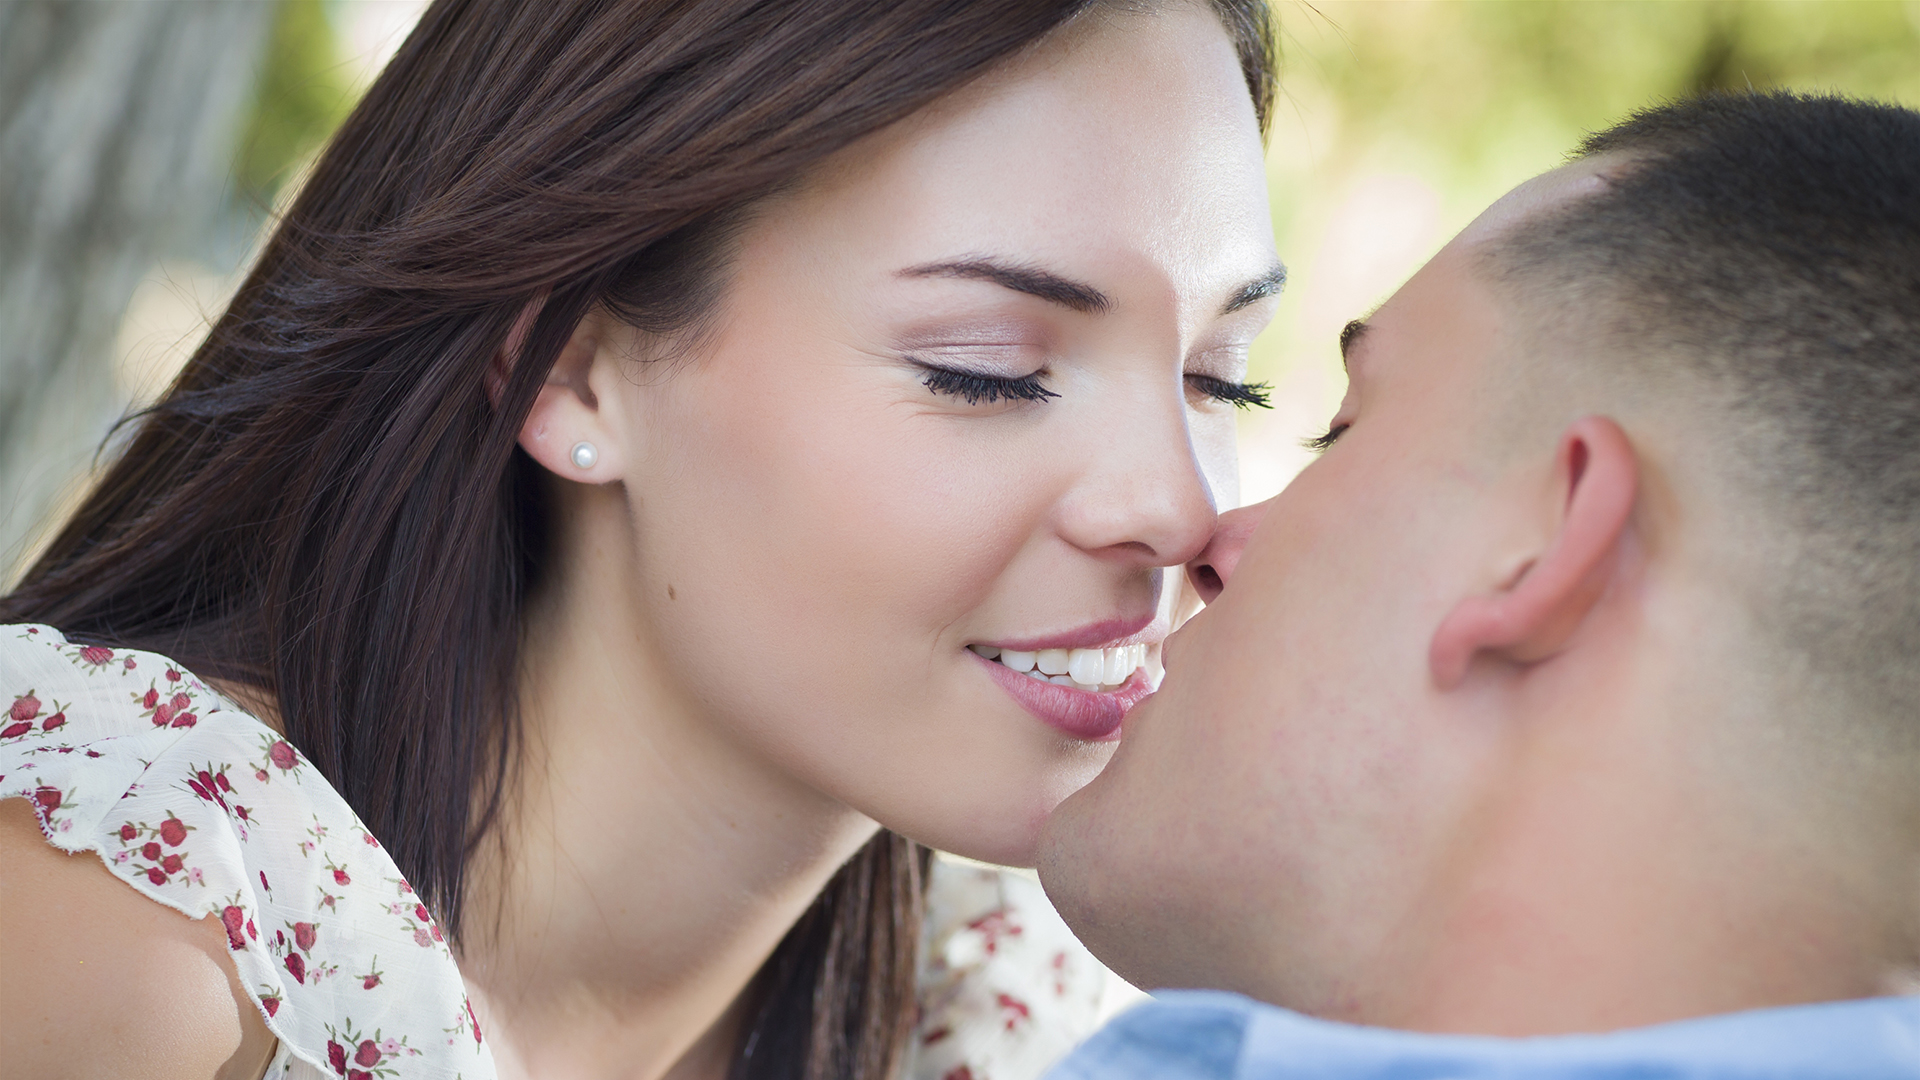 Why do we kiss with our lips